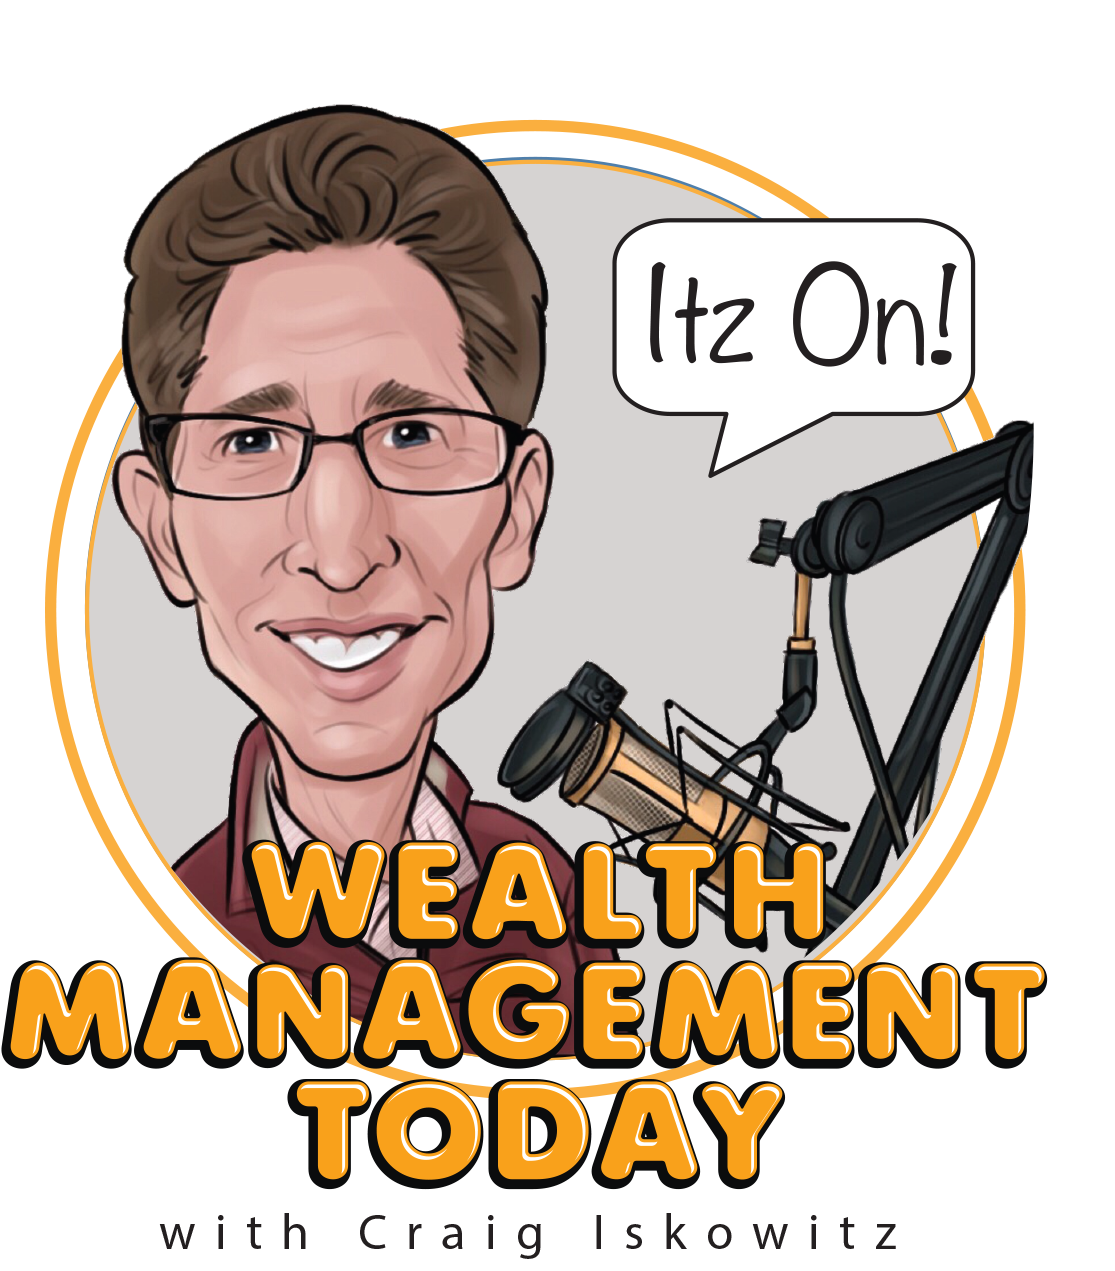 #ItzOnWealthTech Ep. 77: Building a Fintech Ecosystem for Modern Retirement, with Rhian Horgan, CEO of Silvur